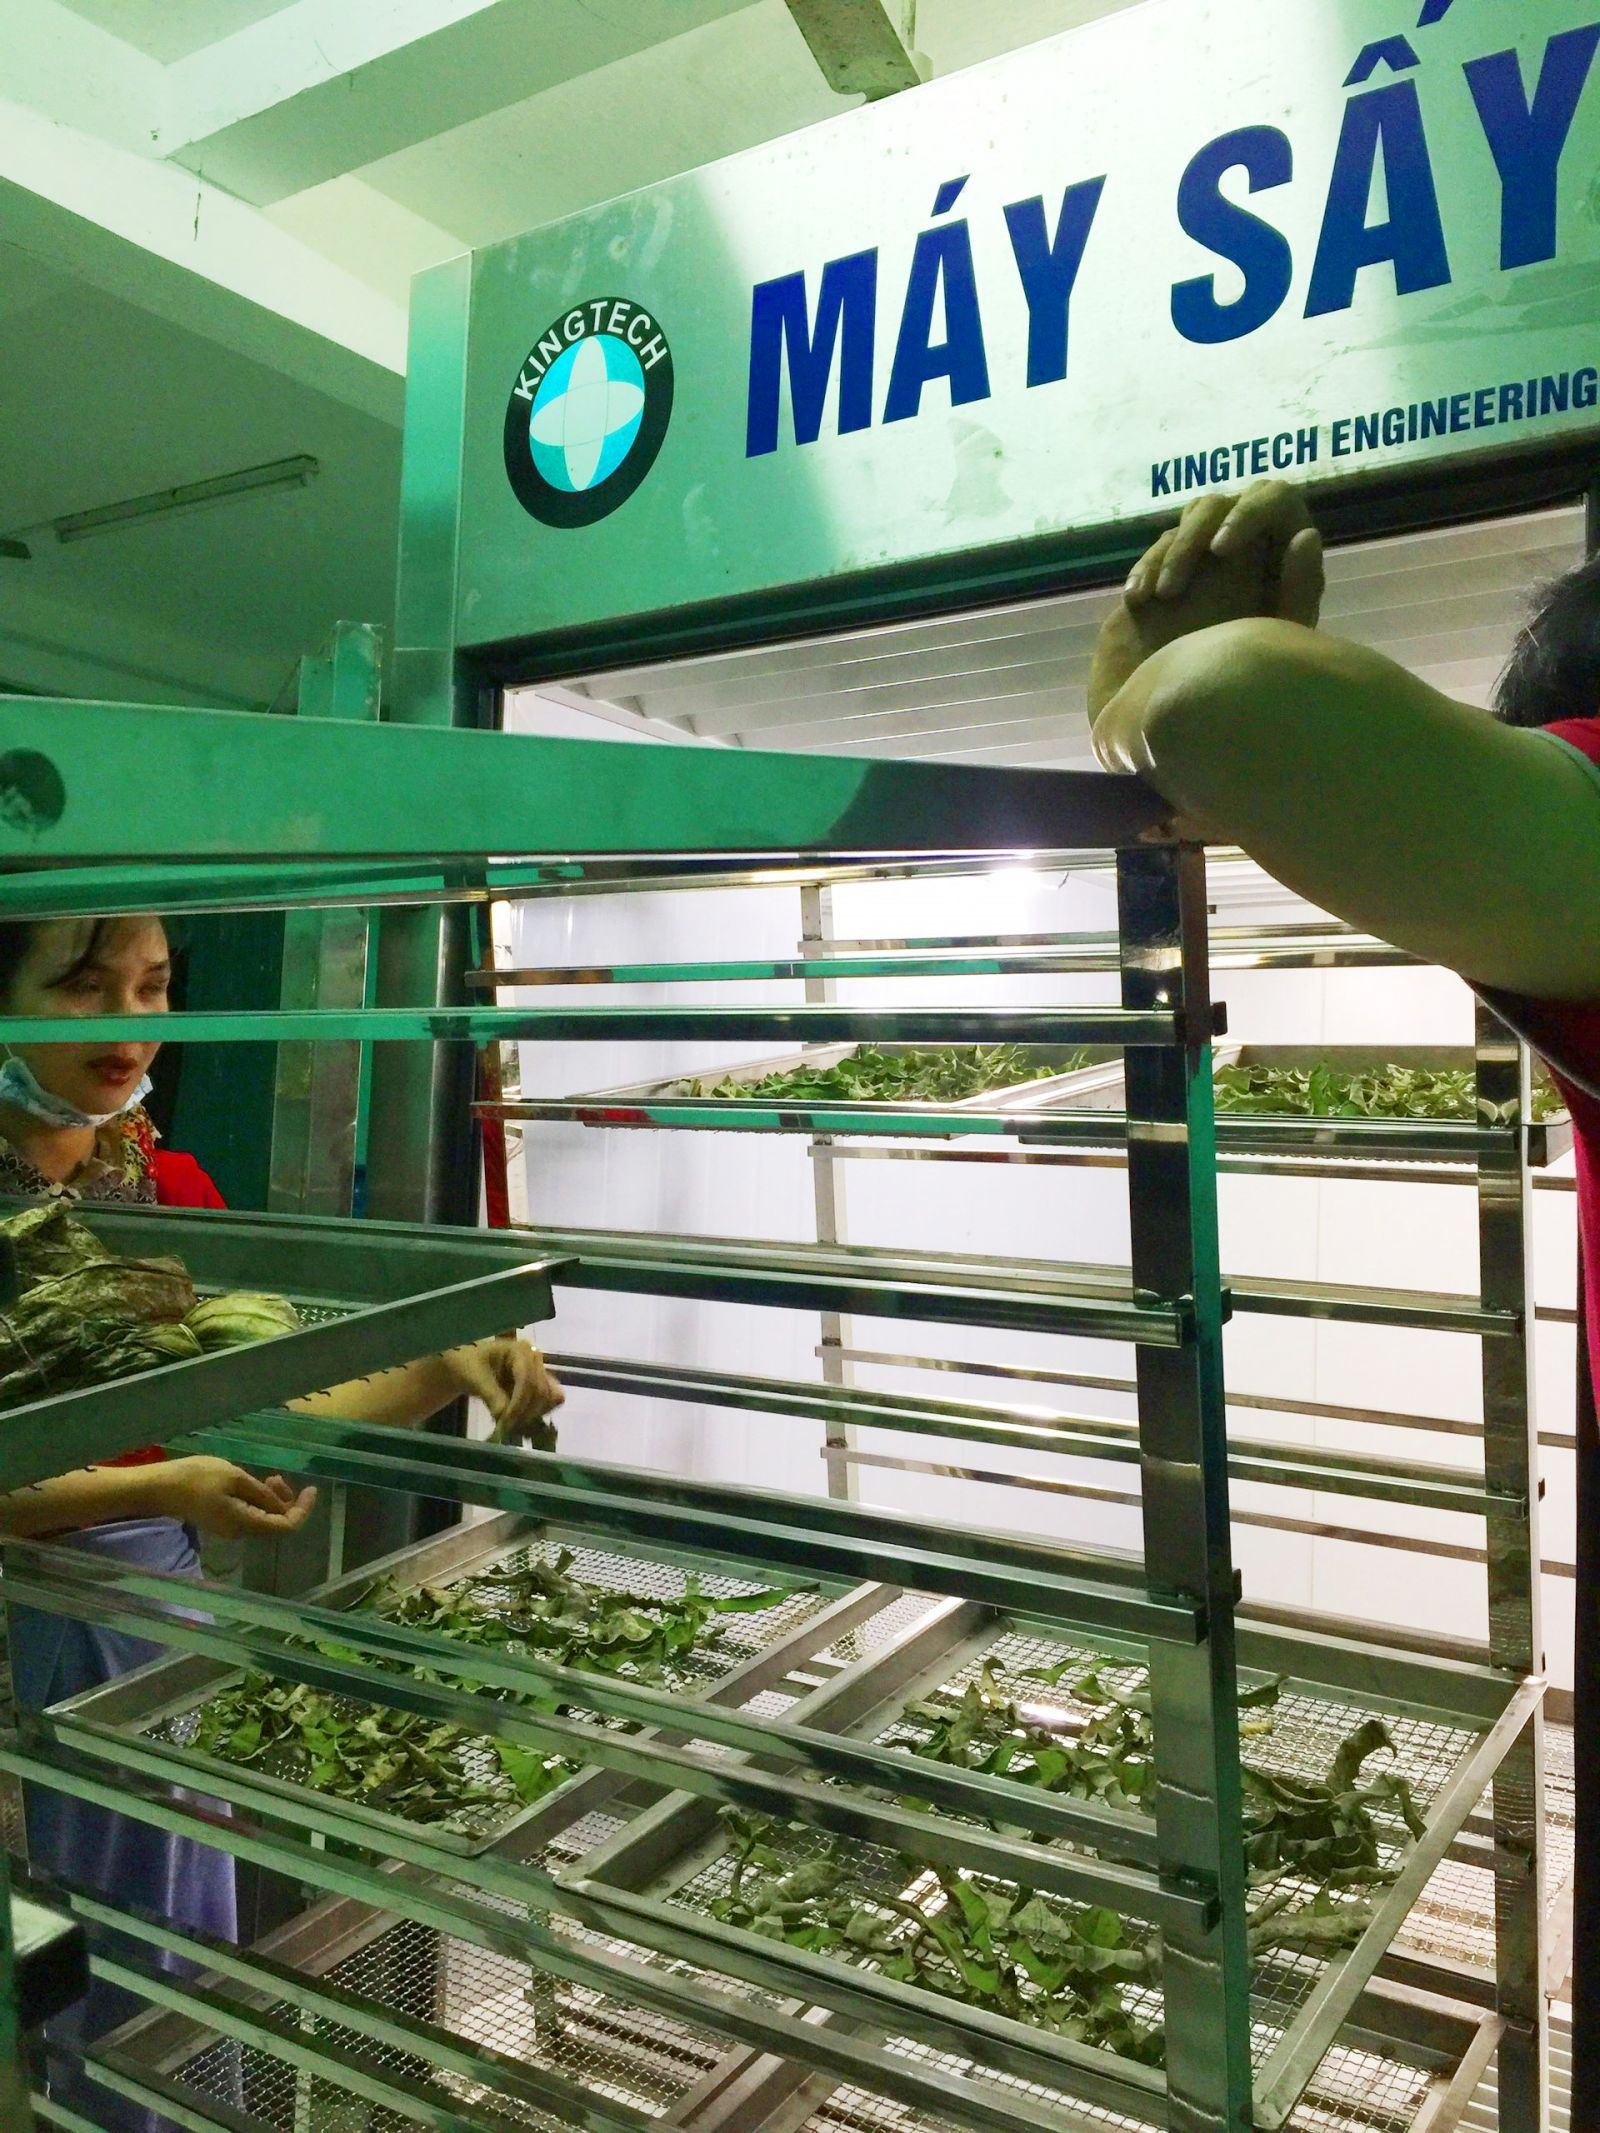 According to Ms. Dieu Huyen, the freeze-drying food method will help Hue lotus products to be available in all 4 seasons in a year with the almost unchanged quality